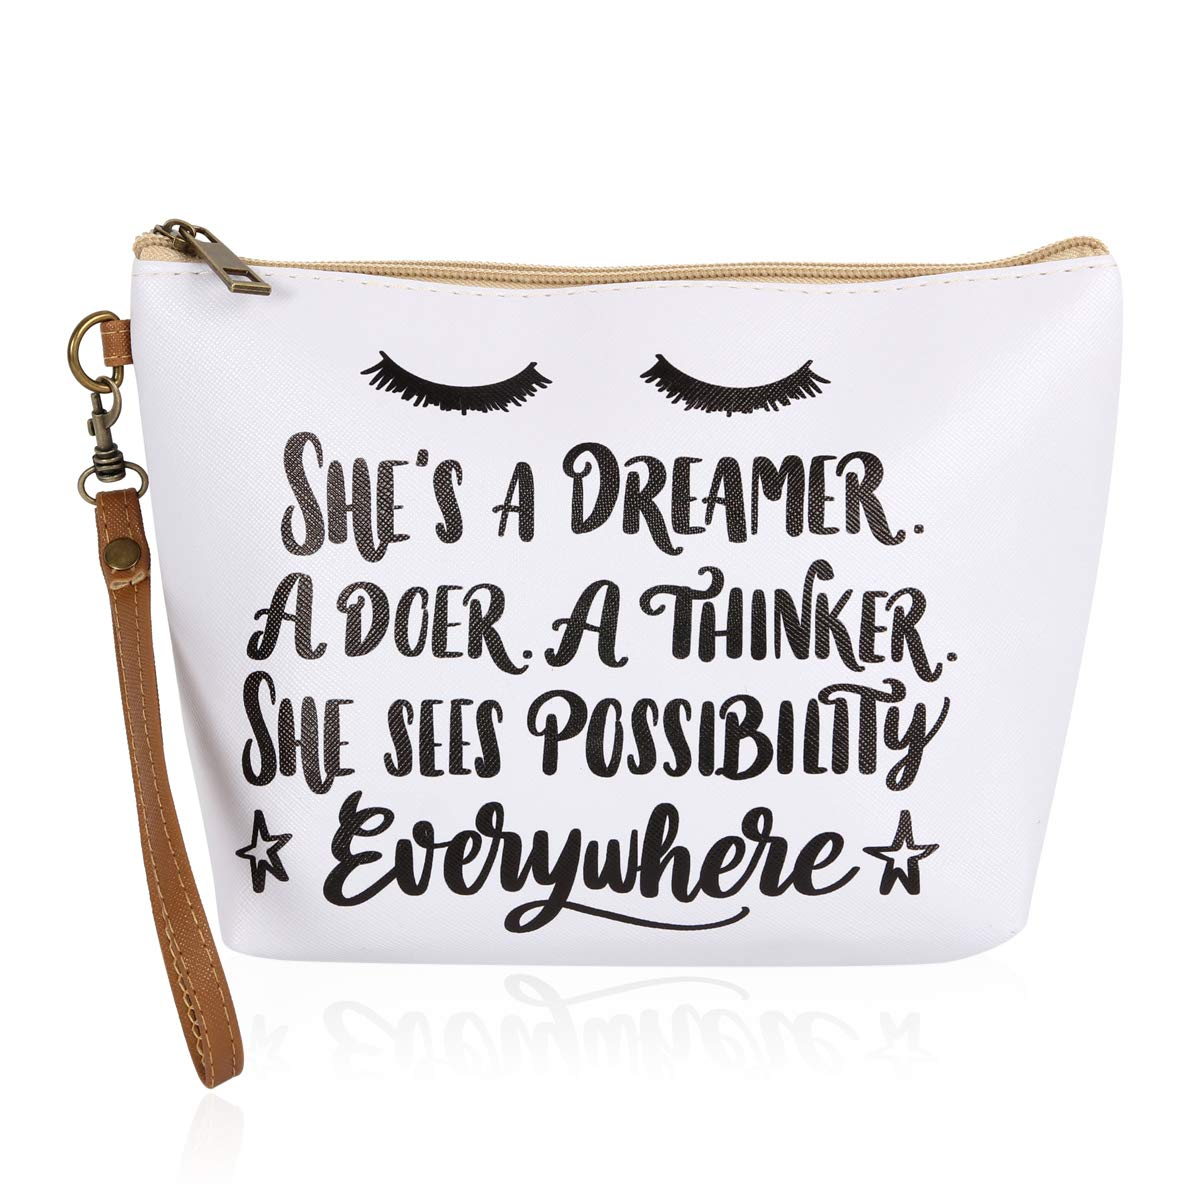 Multifunction Cute Print Travel Cosmetic Pouch Bag - Bridesmaid Gift Makeup Organizer Toiletry Wristlet Purse Inspirational Quote/Skull/Pineapple (Dreamer)